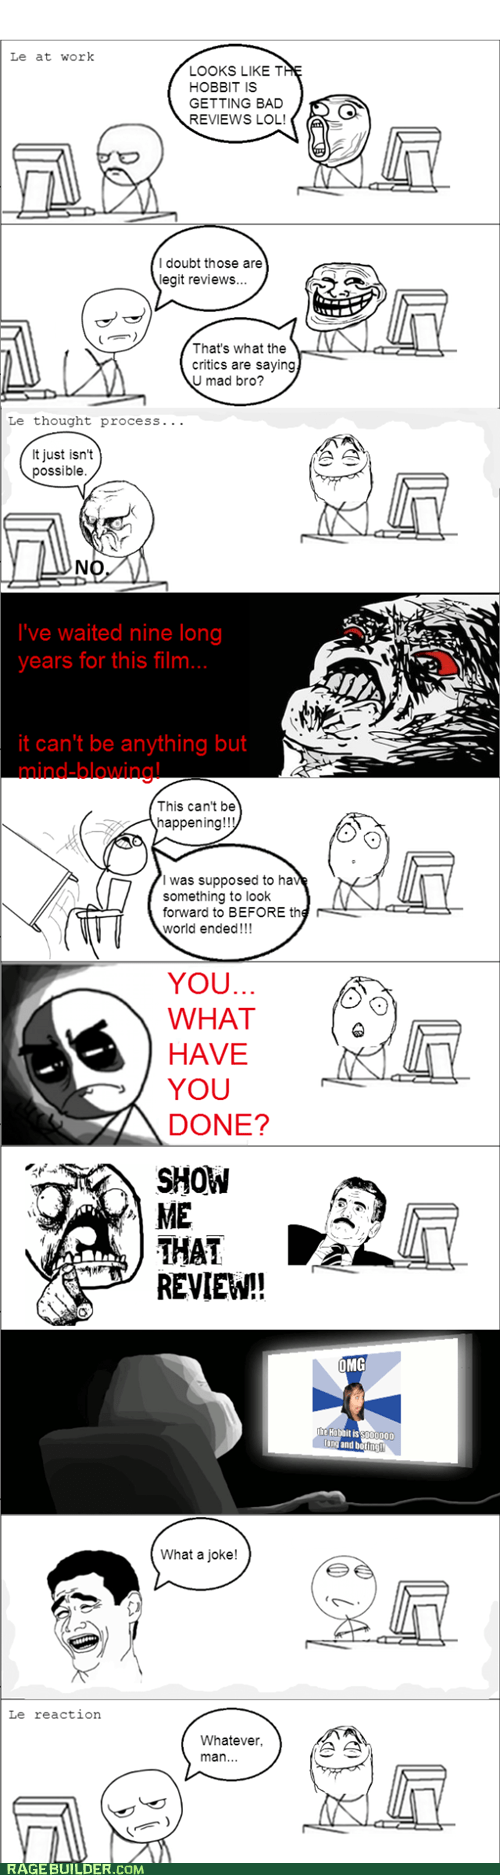 computer soon,review,table flip,work,Movie,what have you done,The Hobbit,troll face,omg